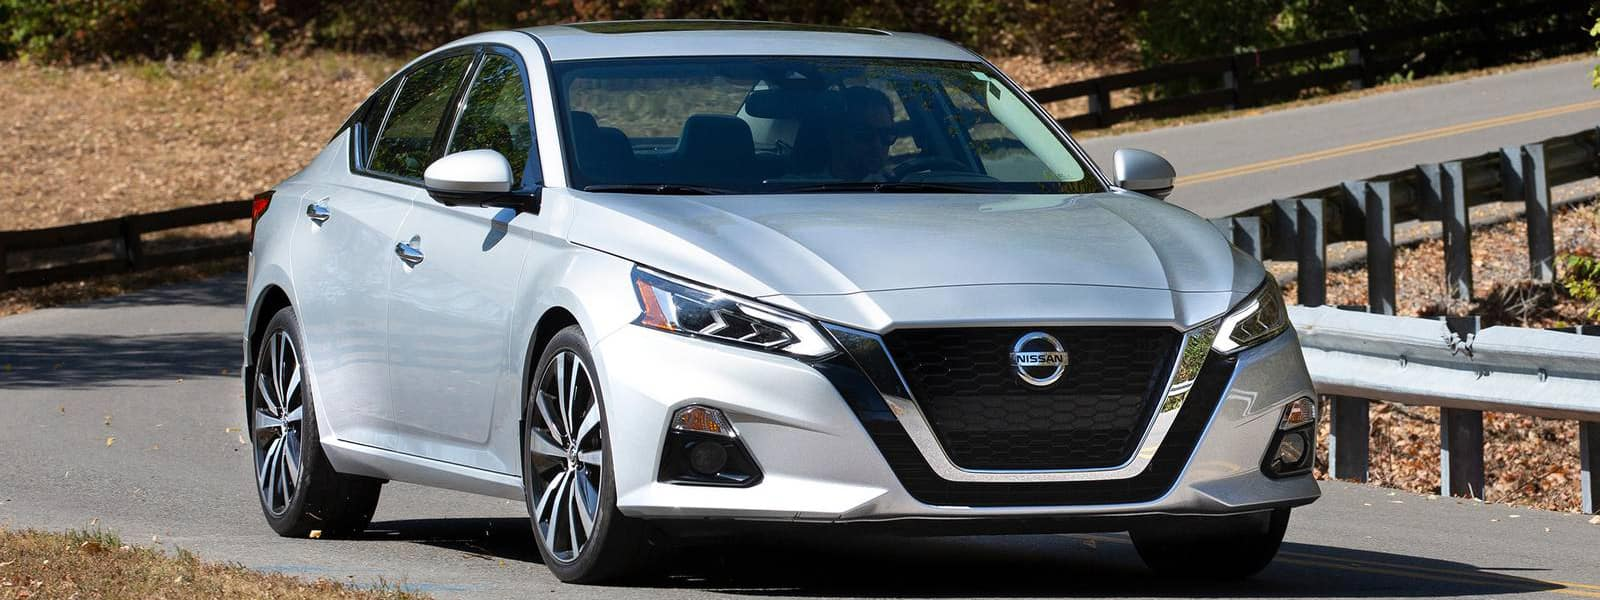 2020 NIssan Altima for sale in Los Angeles